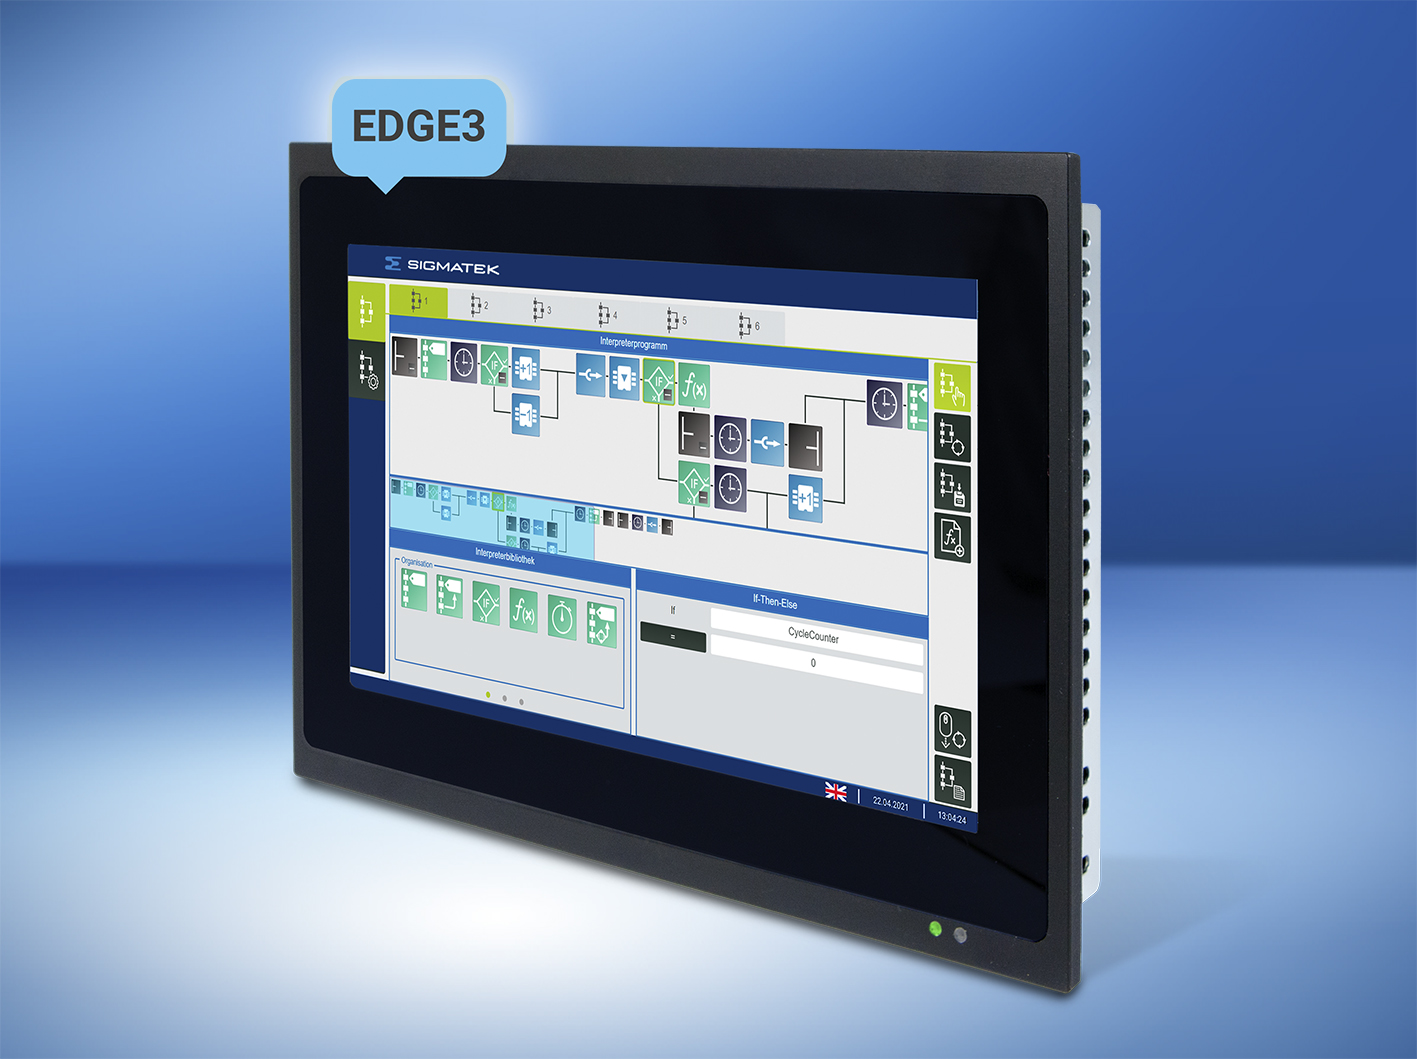 7-inch multi-touch panel for web visualization